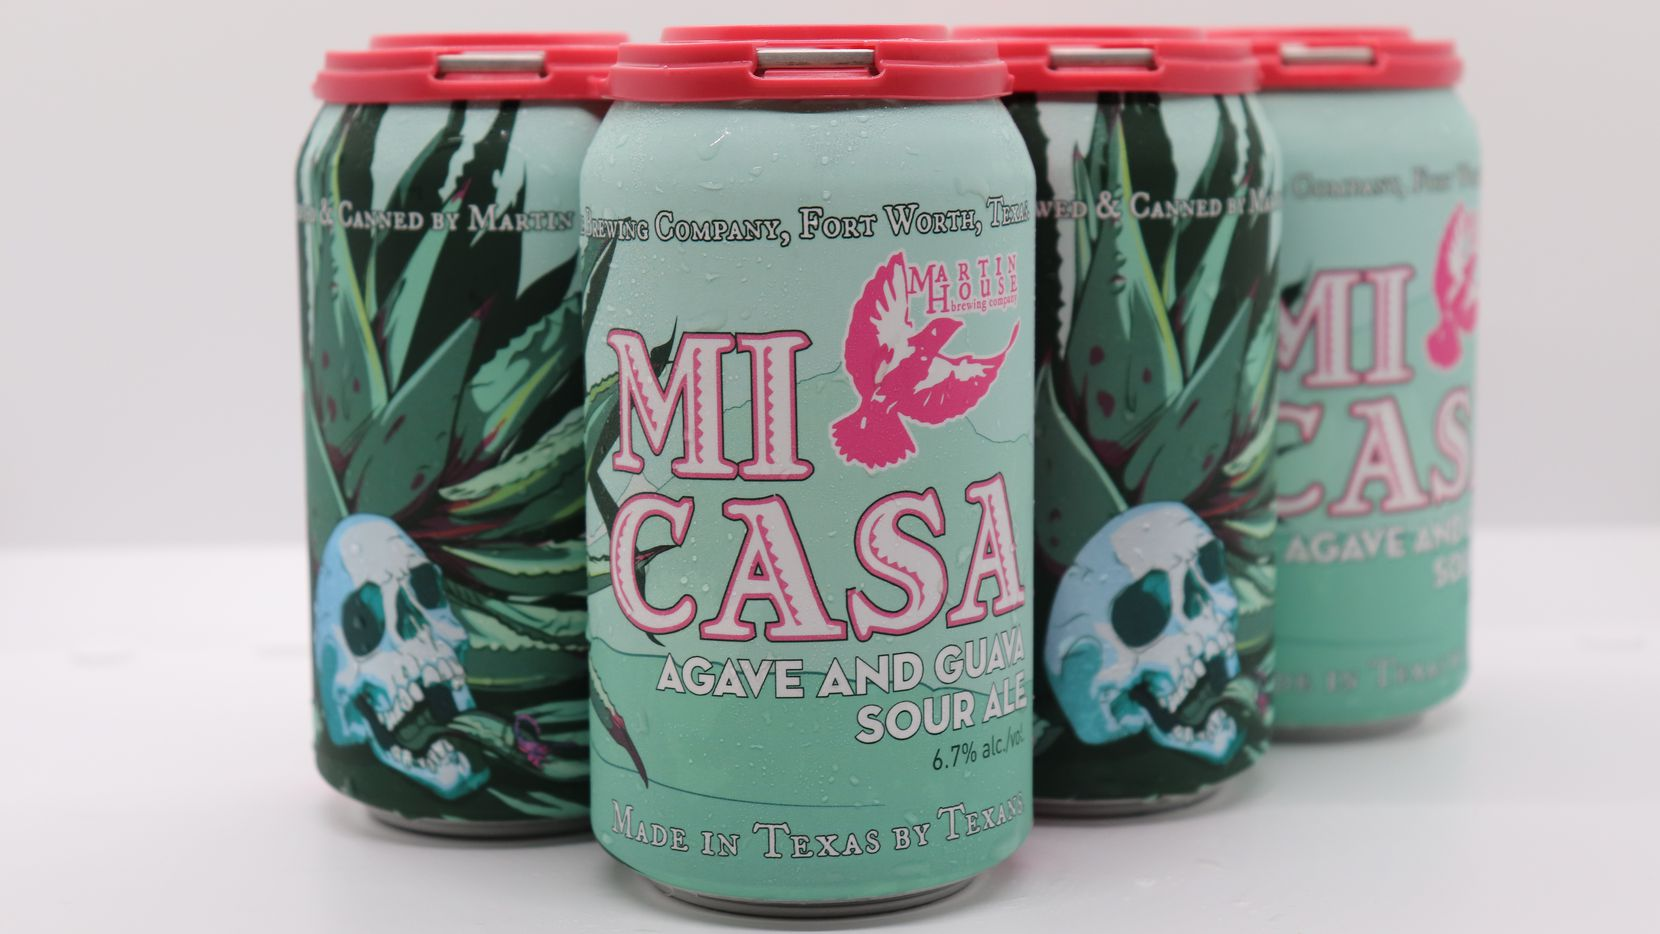 The Mi Casa agave and guava sour ale from Martin House Brewing Company in Fort Worth